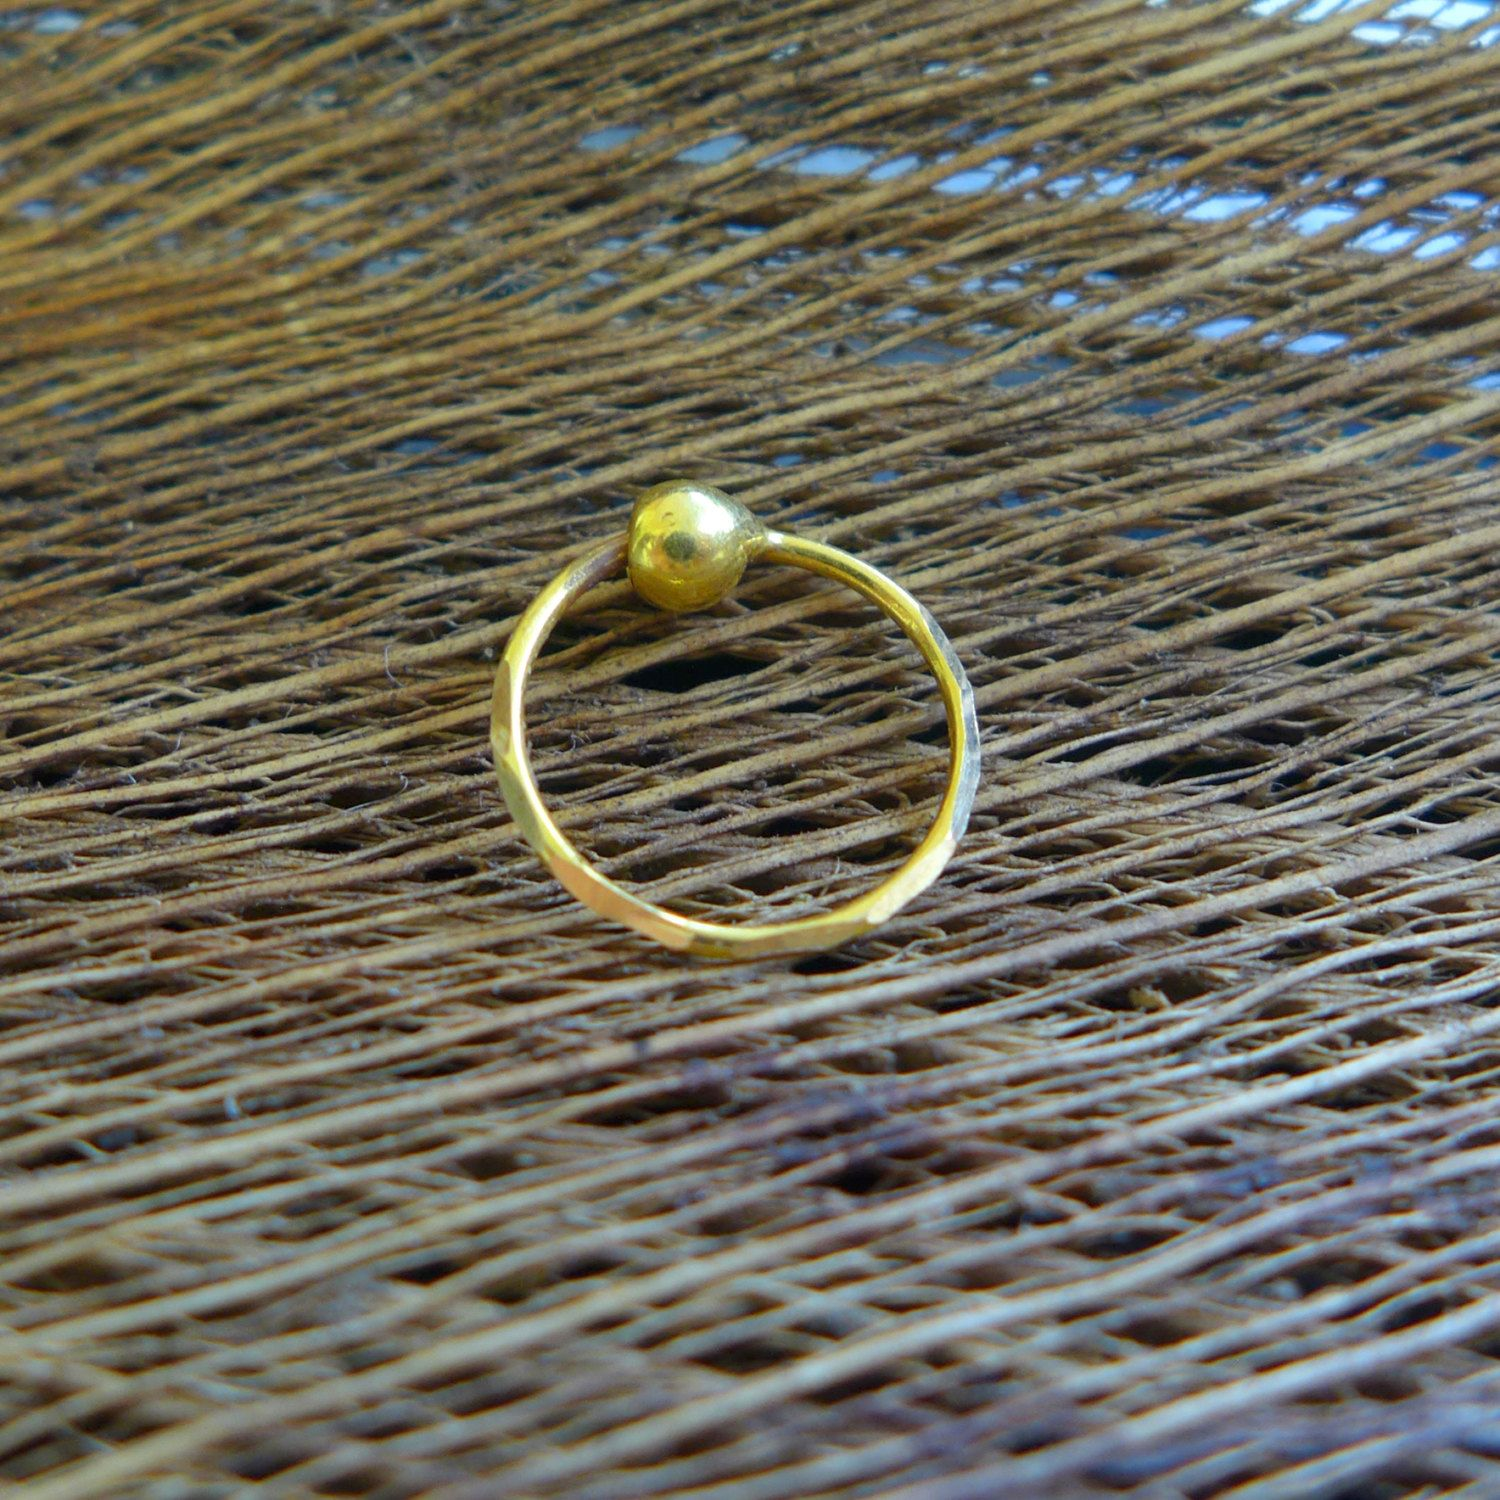 22k Gold Nose Ring For Pierced Nose Gold Wire Ring With Ball